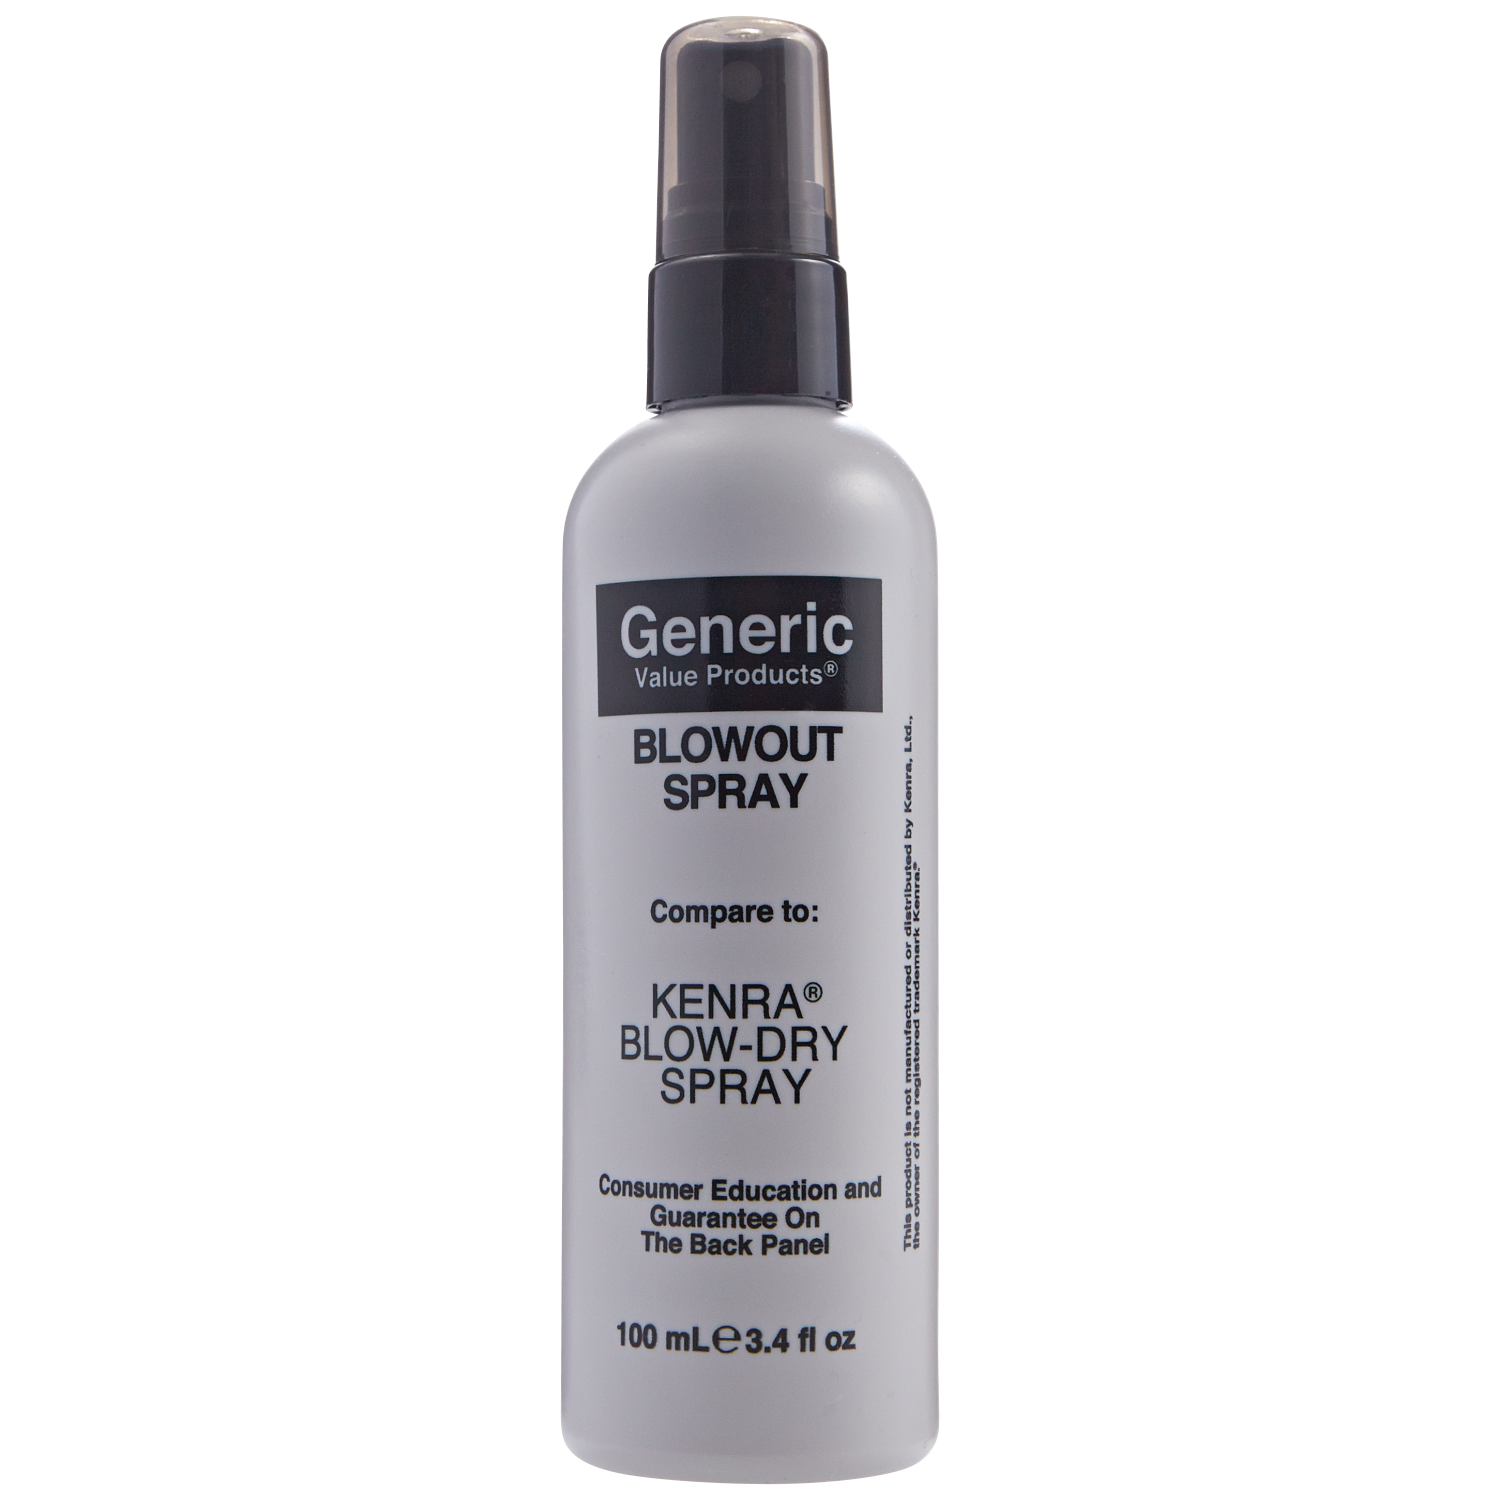 Generic Value Products Blow Out Spray compare to Kenra Blow Dry Spray